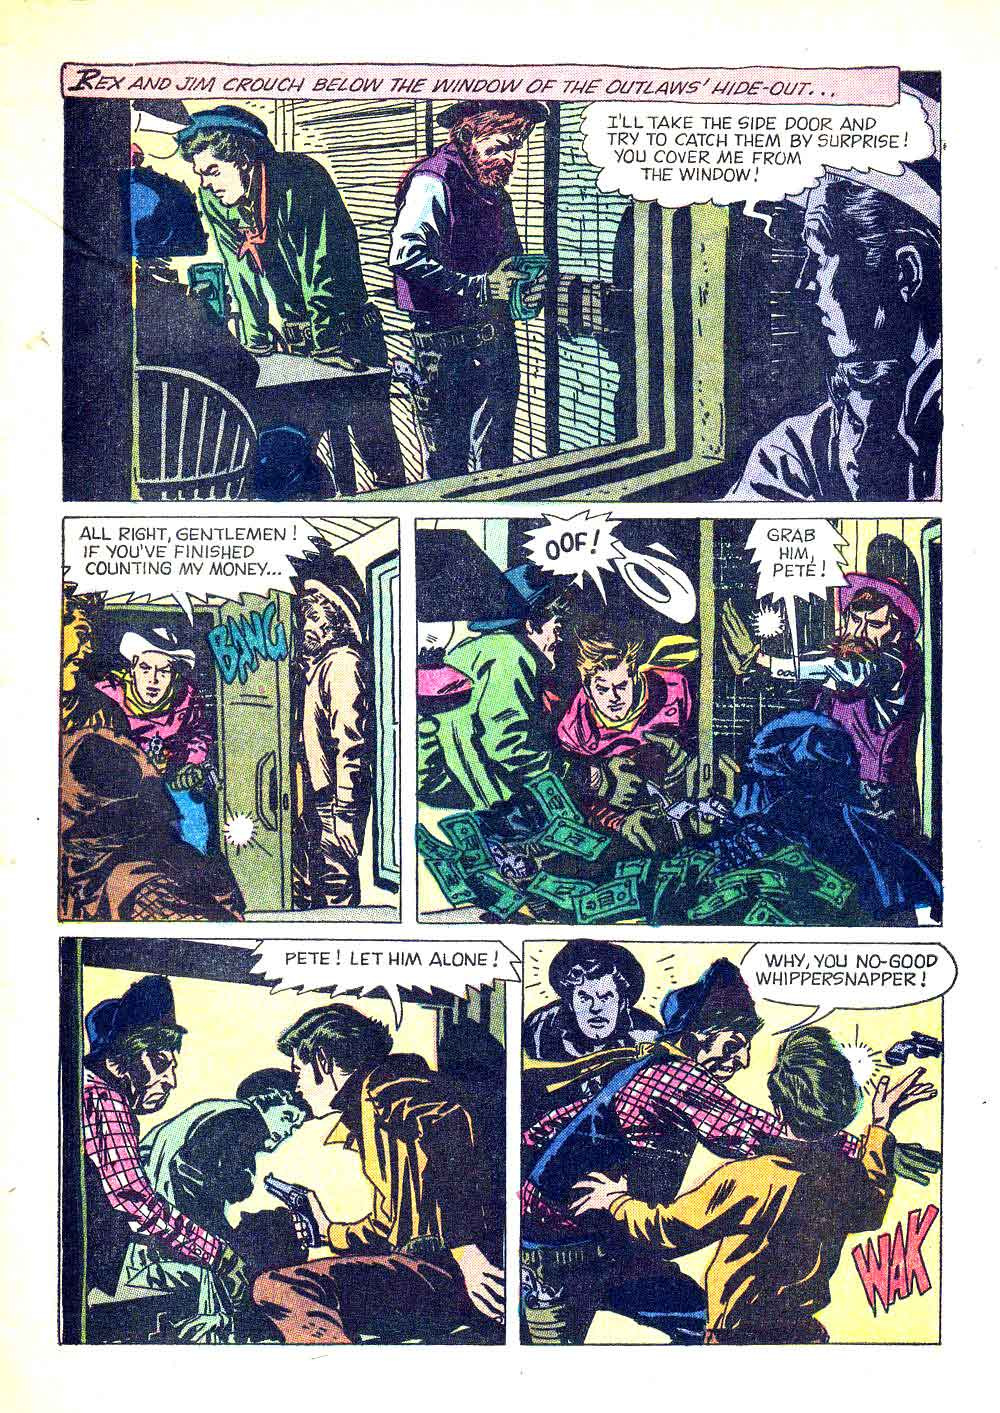 Rex Allen v1 #24 dell western comic book page art by Alex Toth